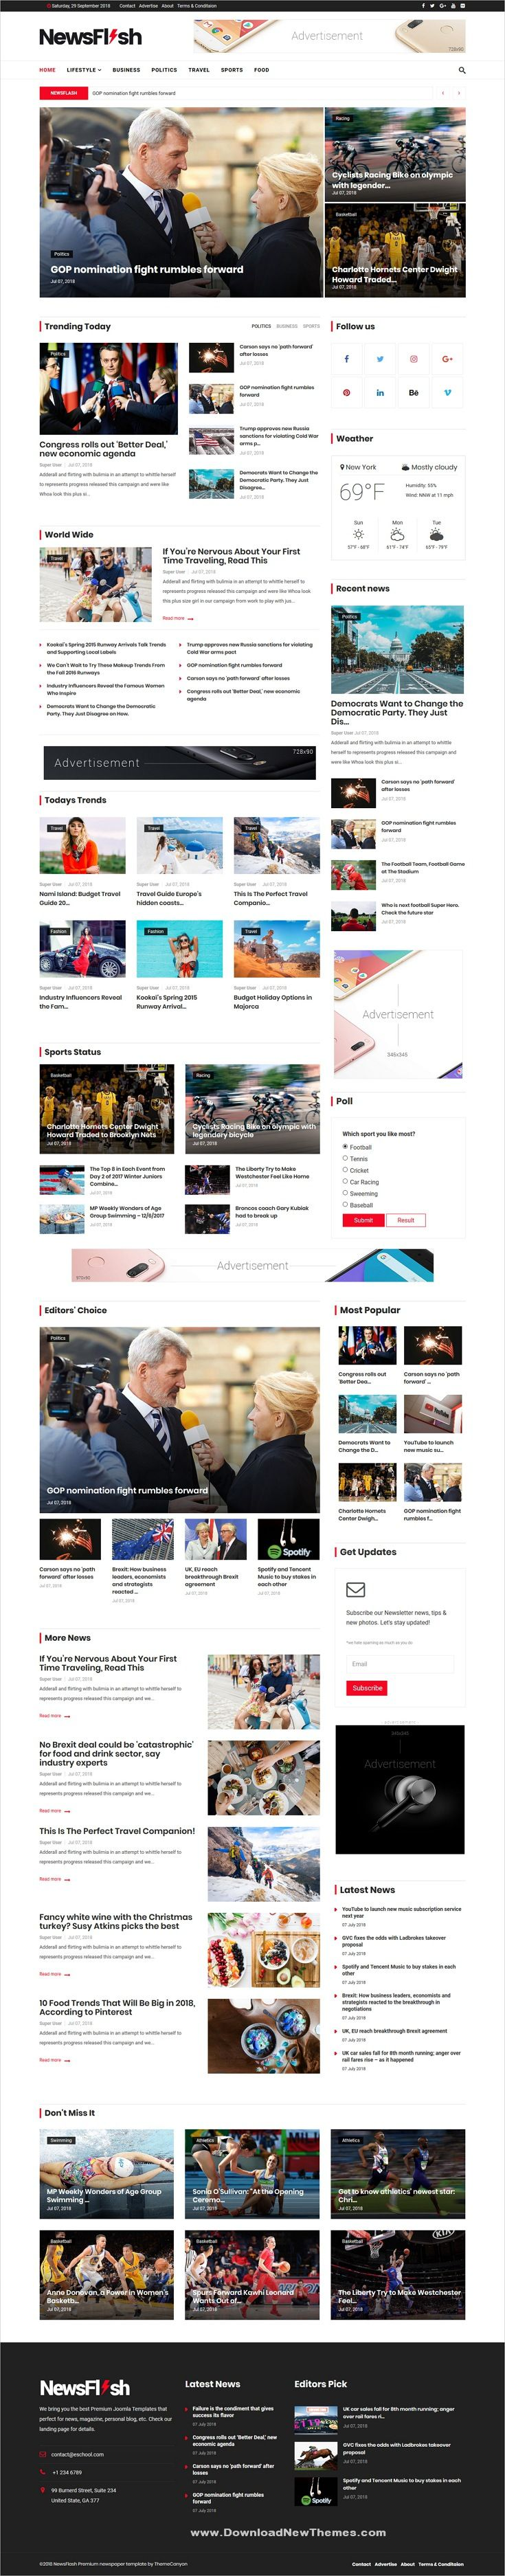 newsflash is a clean and modern design responsive joomla template